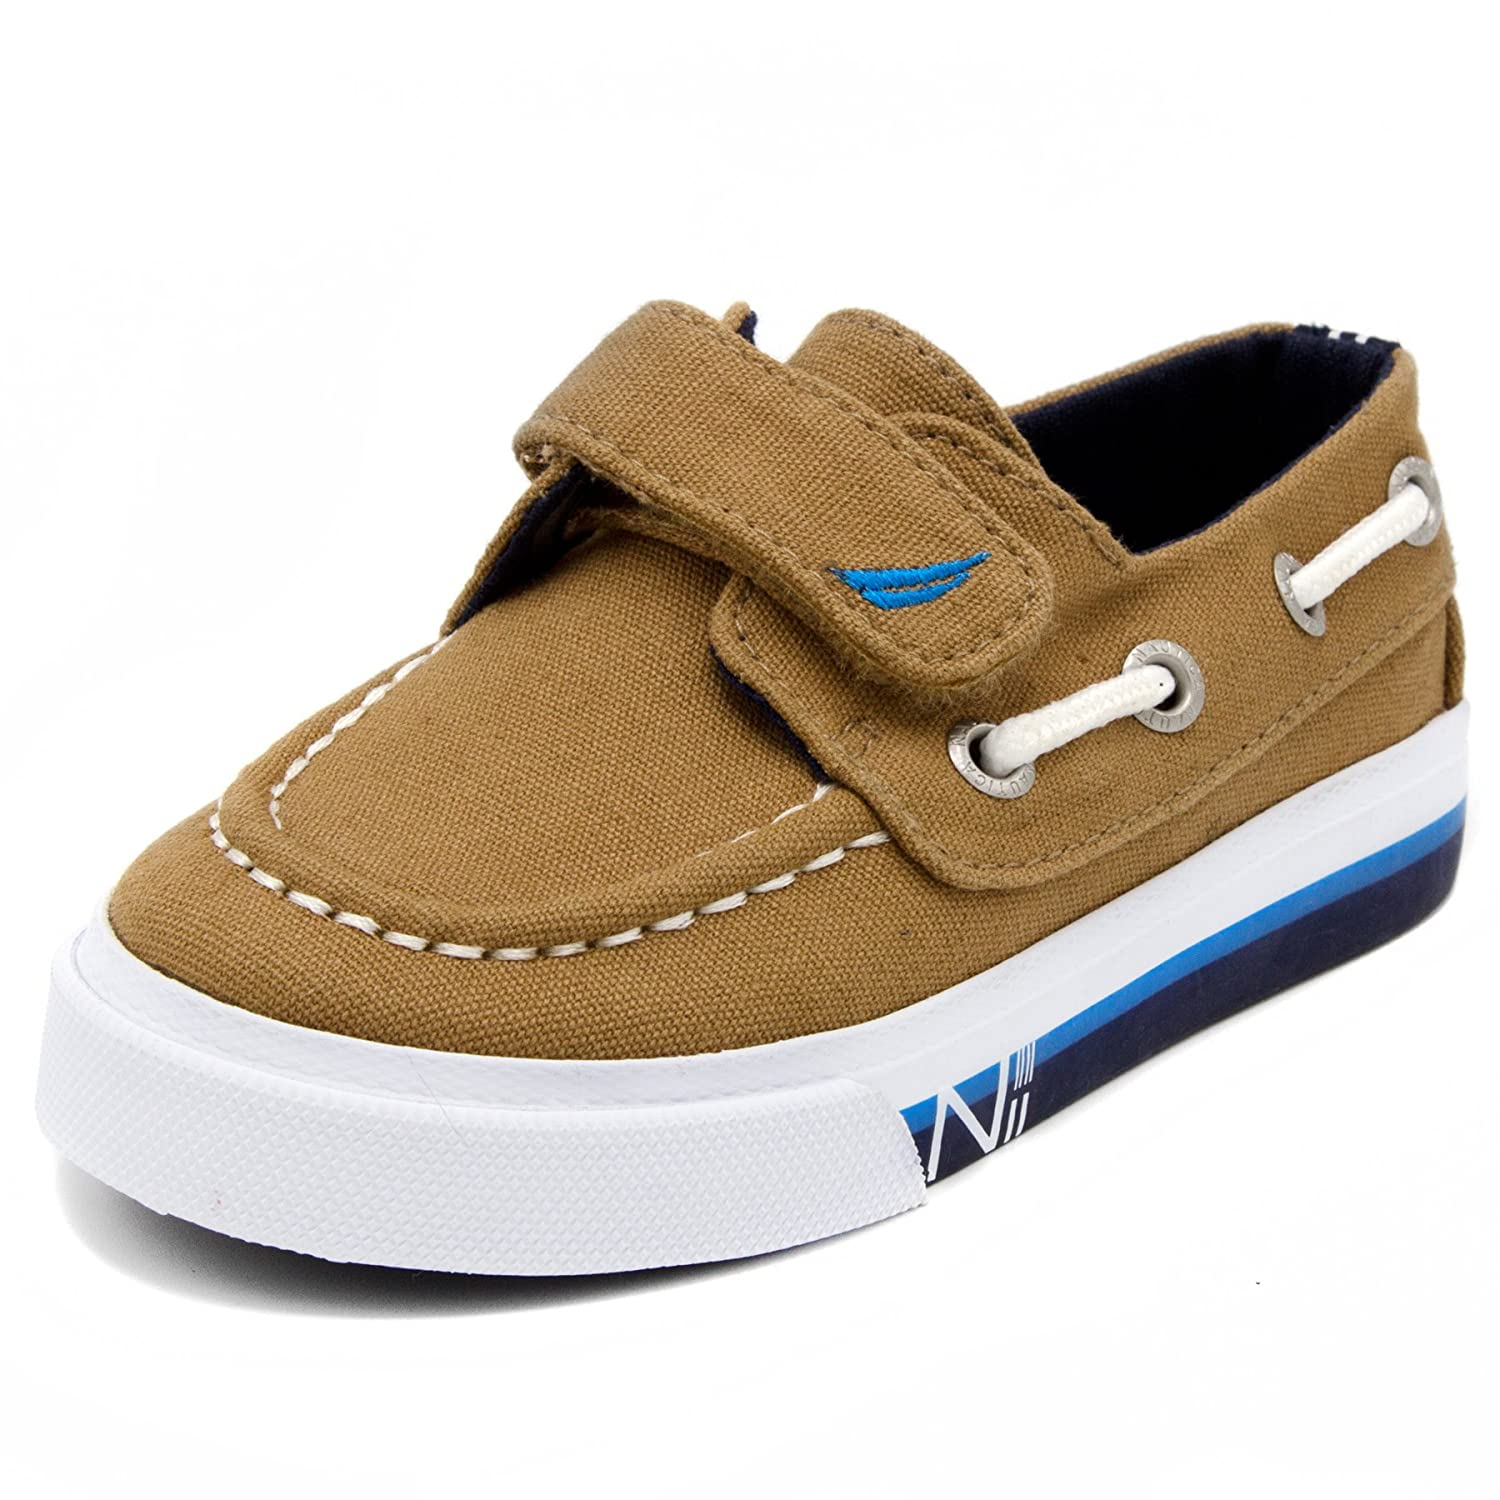 Nautica Kids' Little River 3 Toddler Boat Shoe ka56wjr